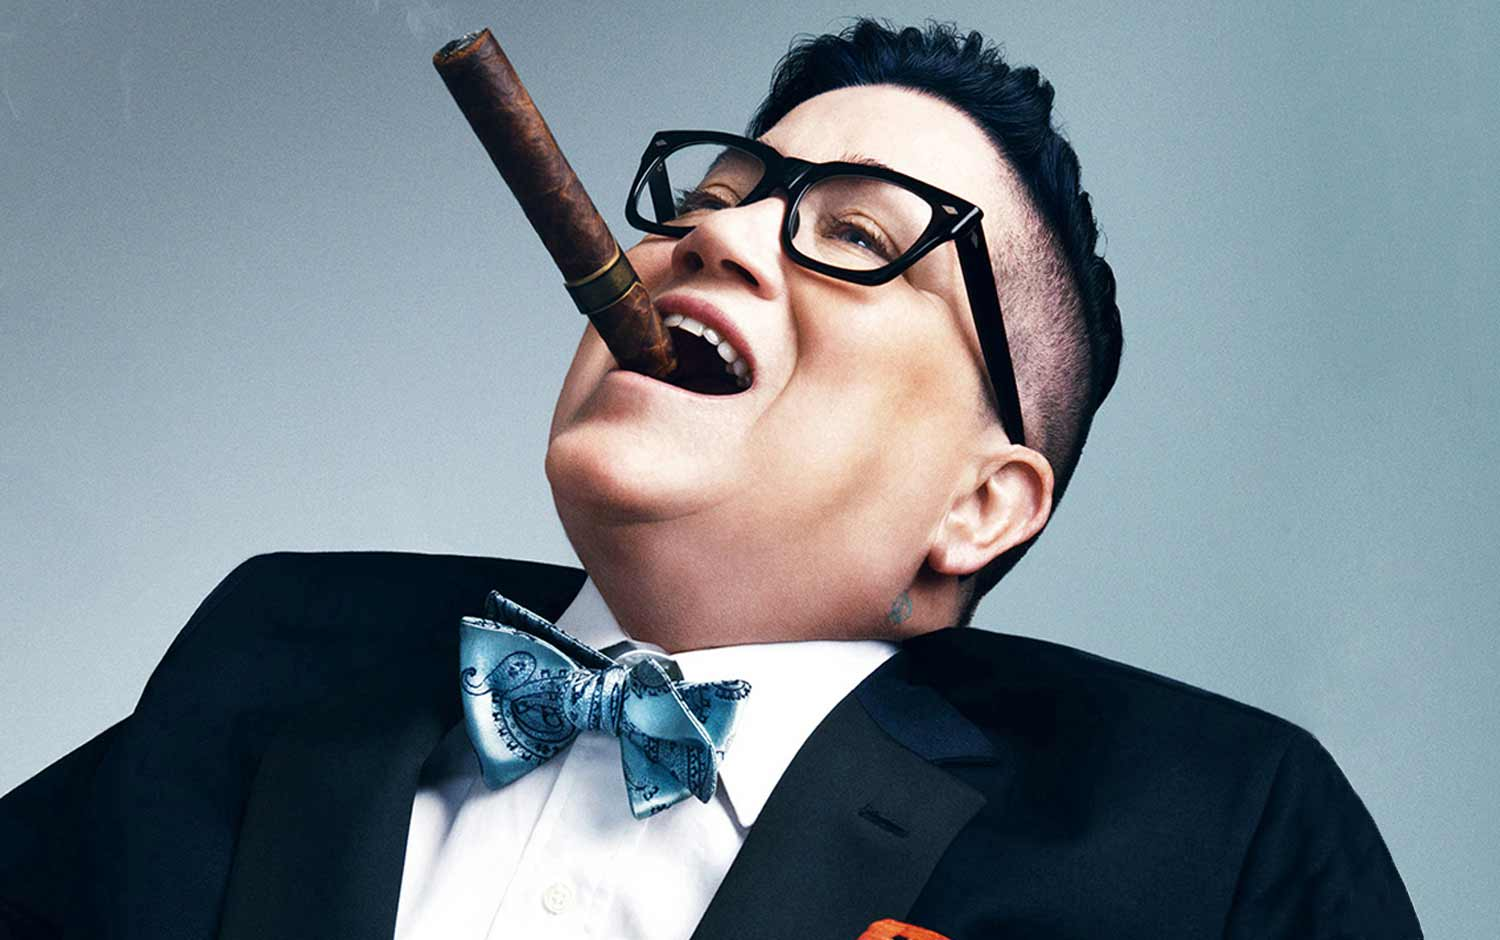 Lea Delaria being a bad-ass